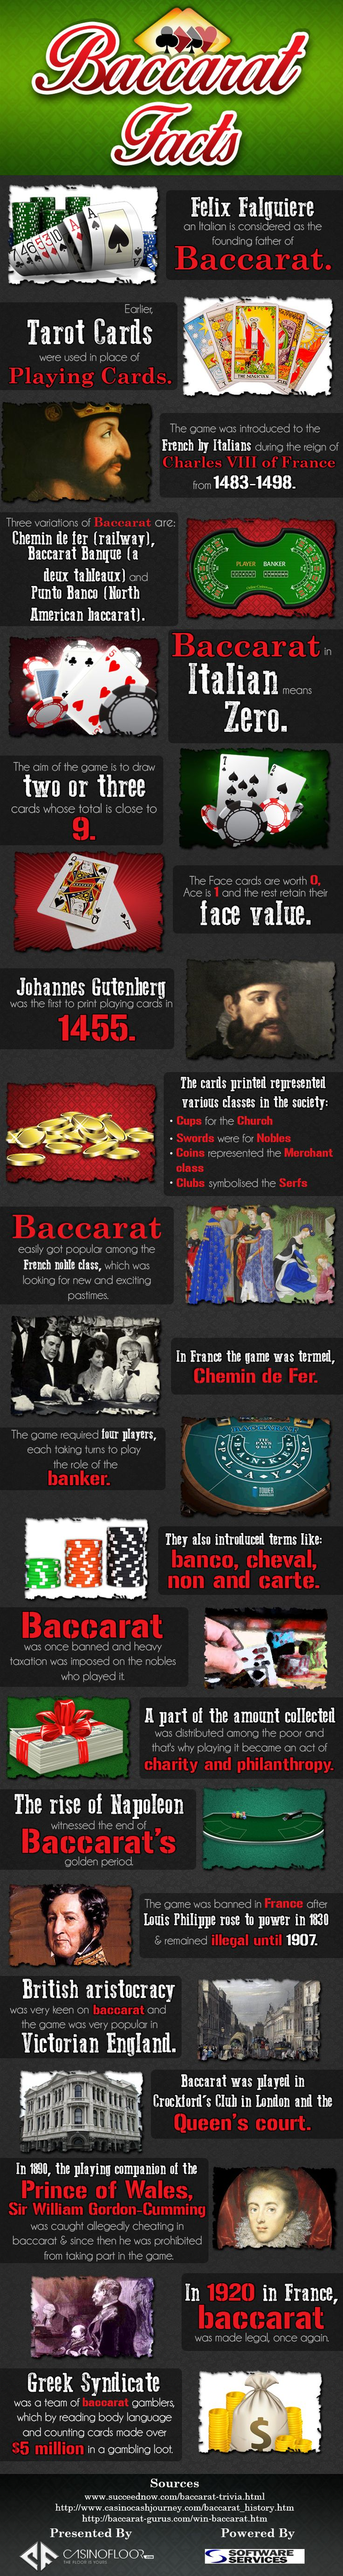 Baccarat Facts